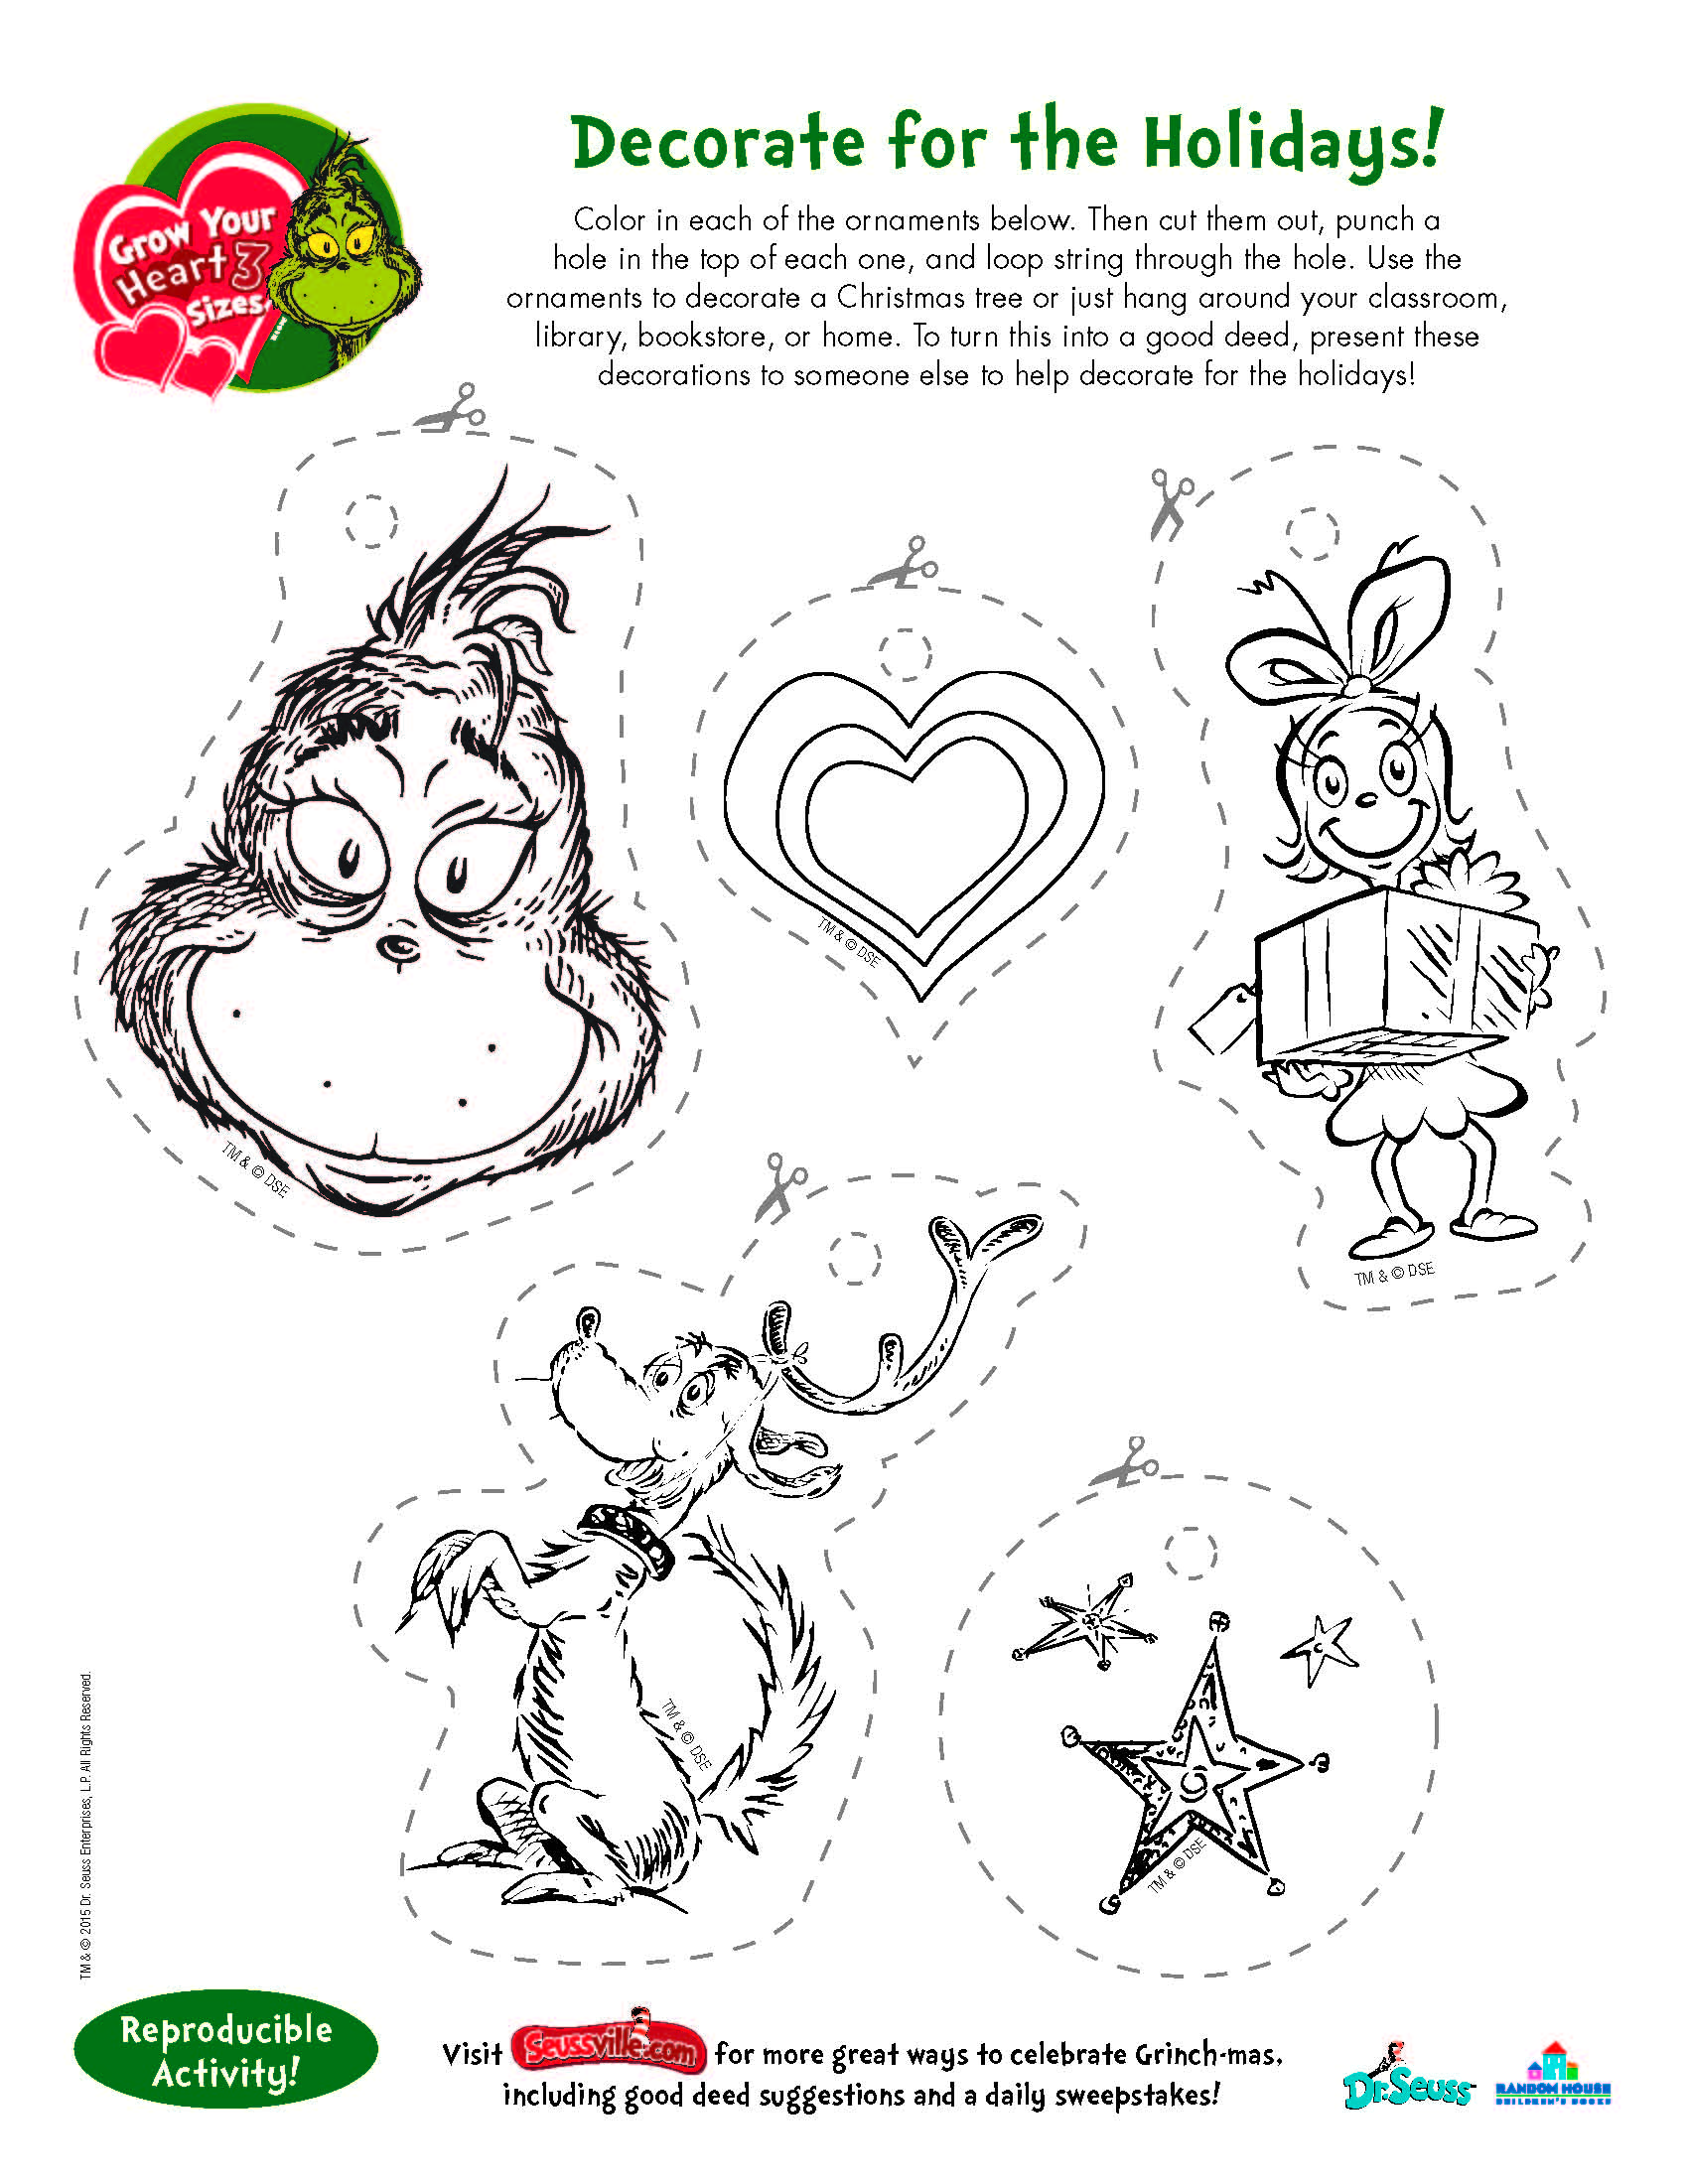 Free printable DIY Grinch ornaments page for kids to color